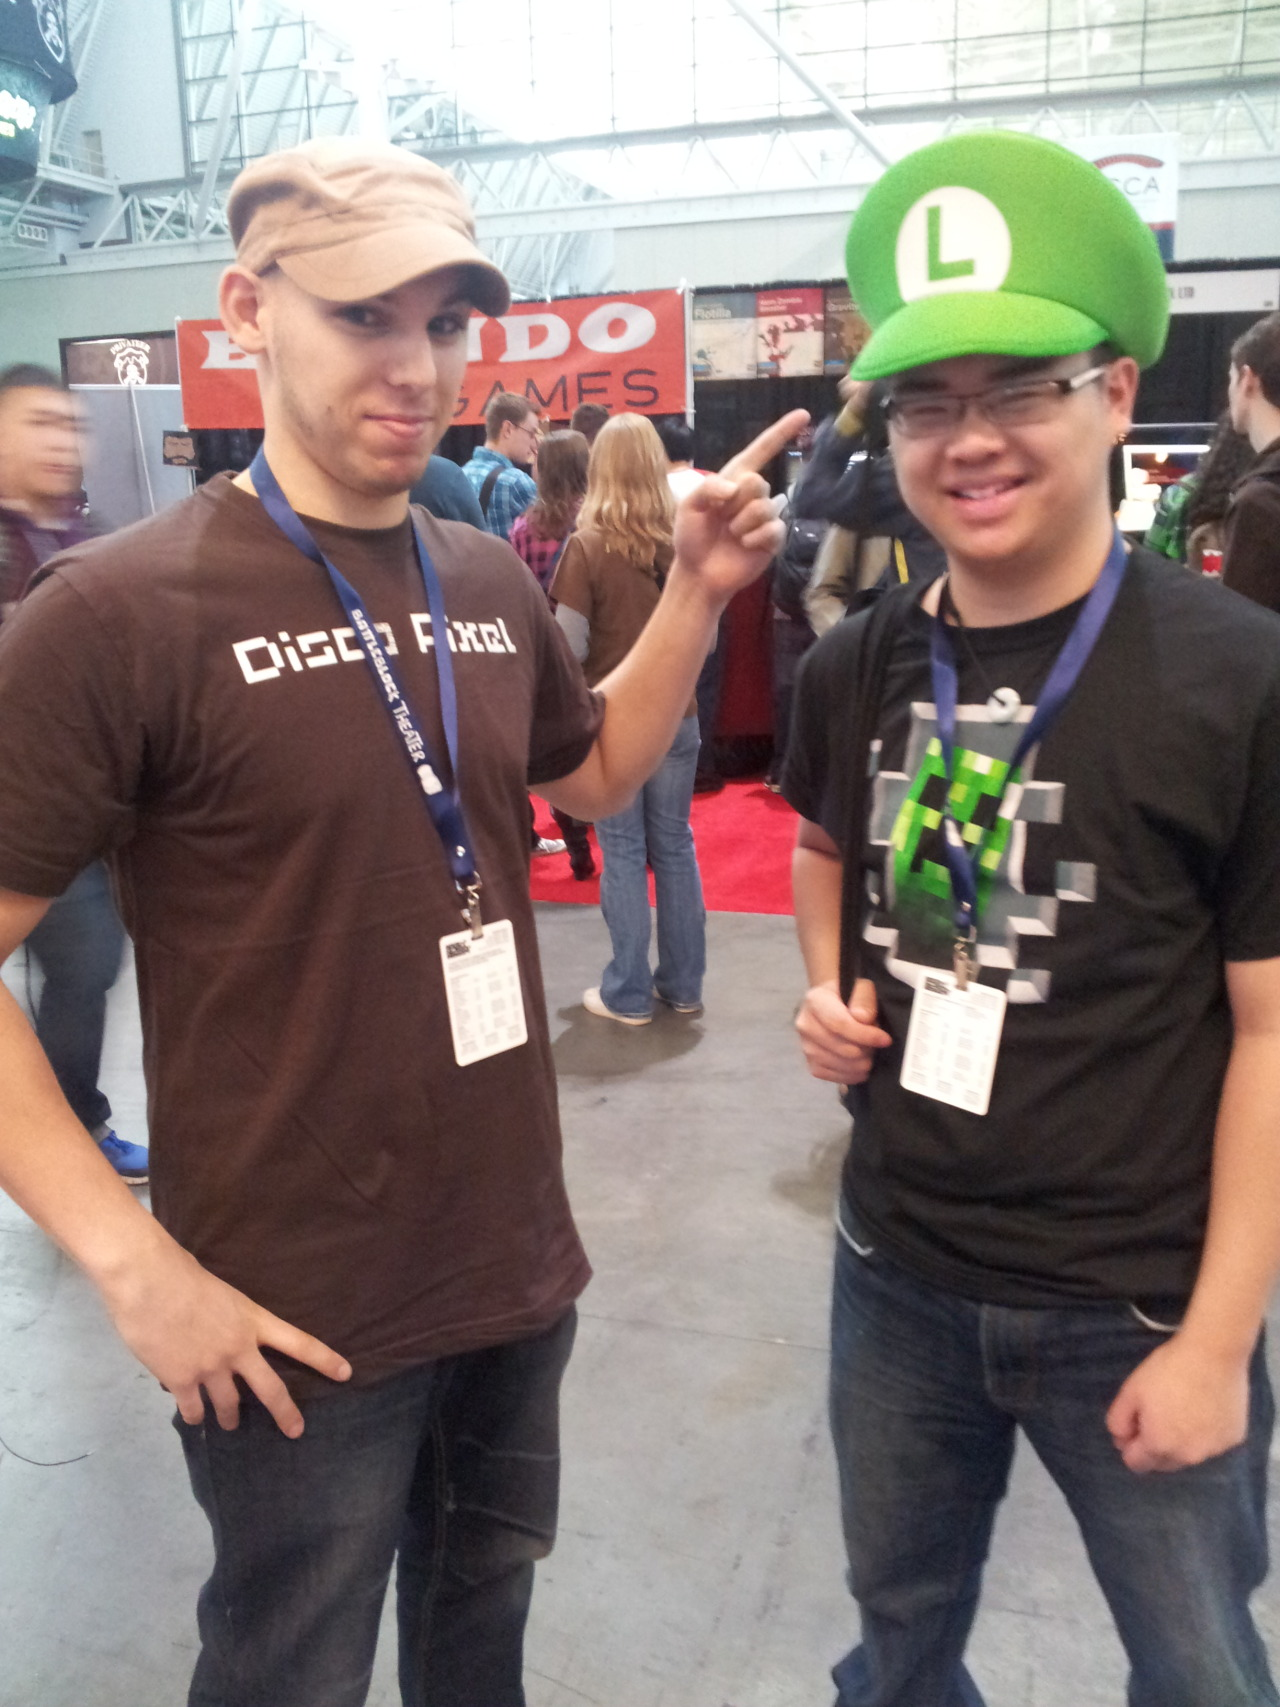 Luigi hanging out at PAX East with, uh, Luigi.